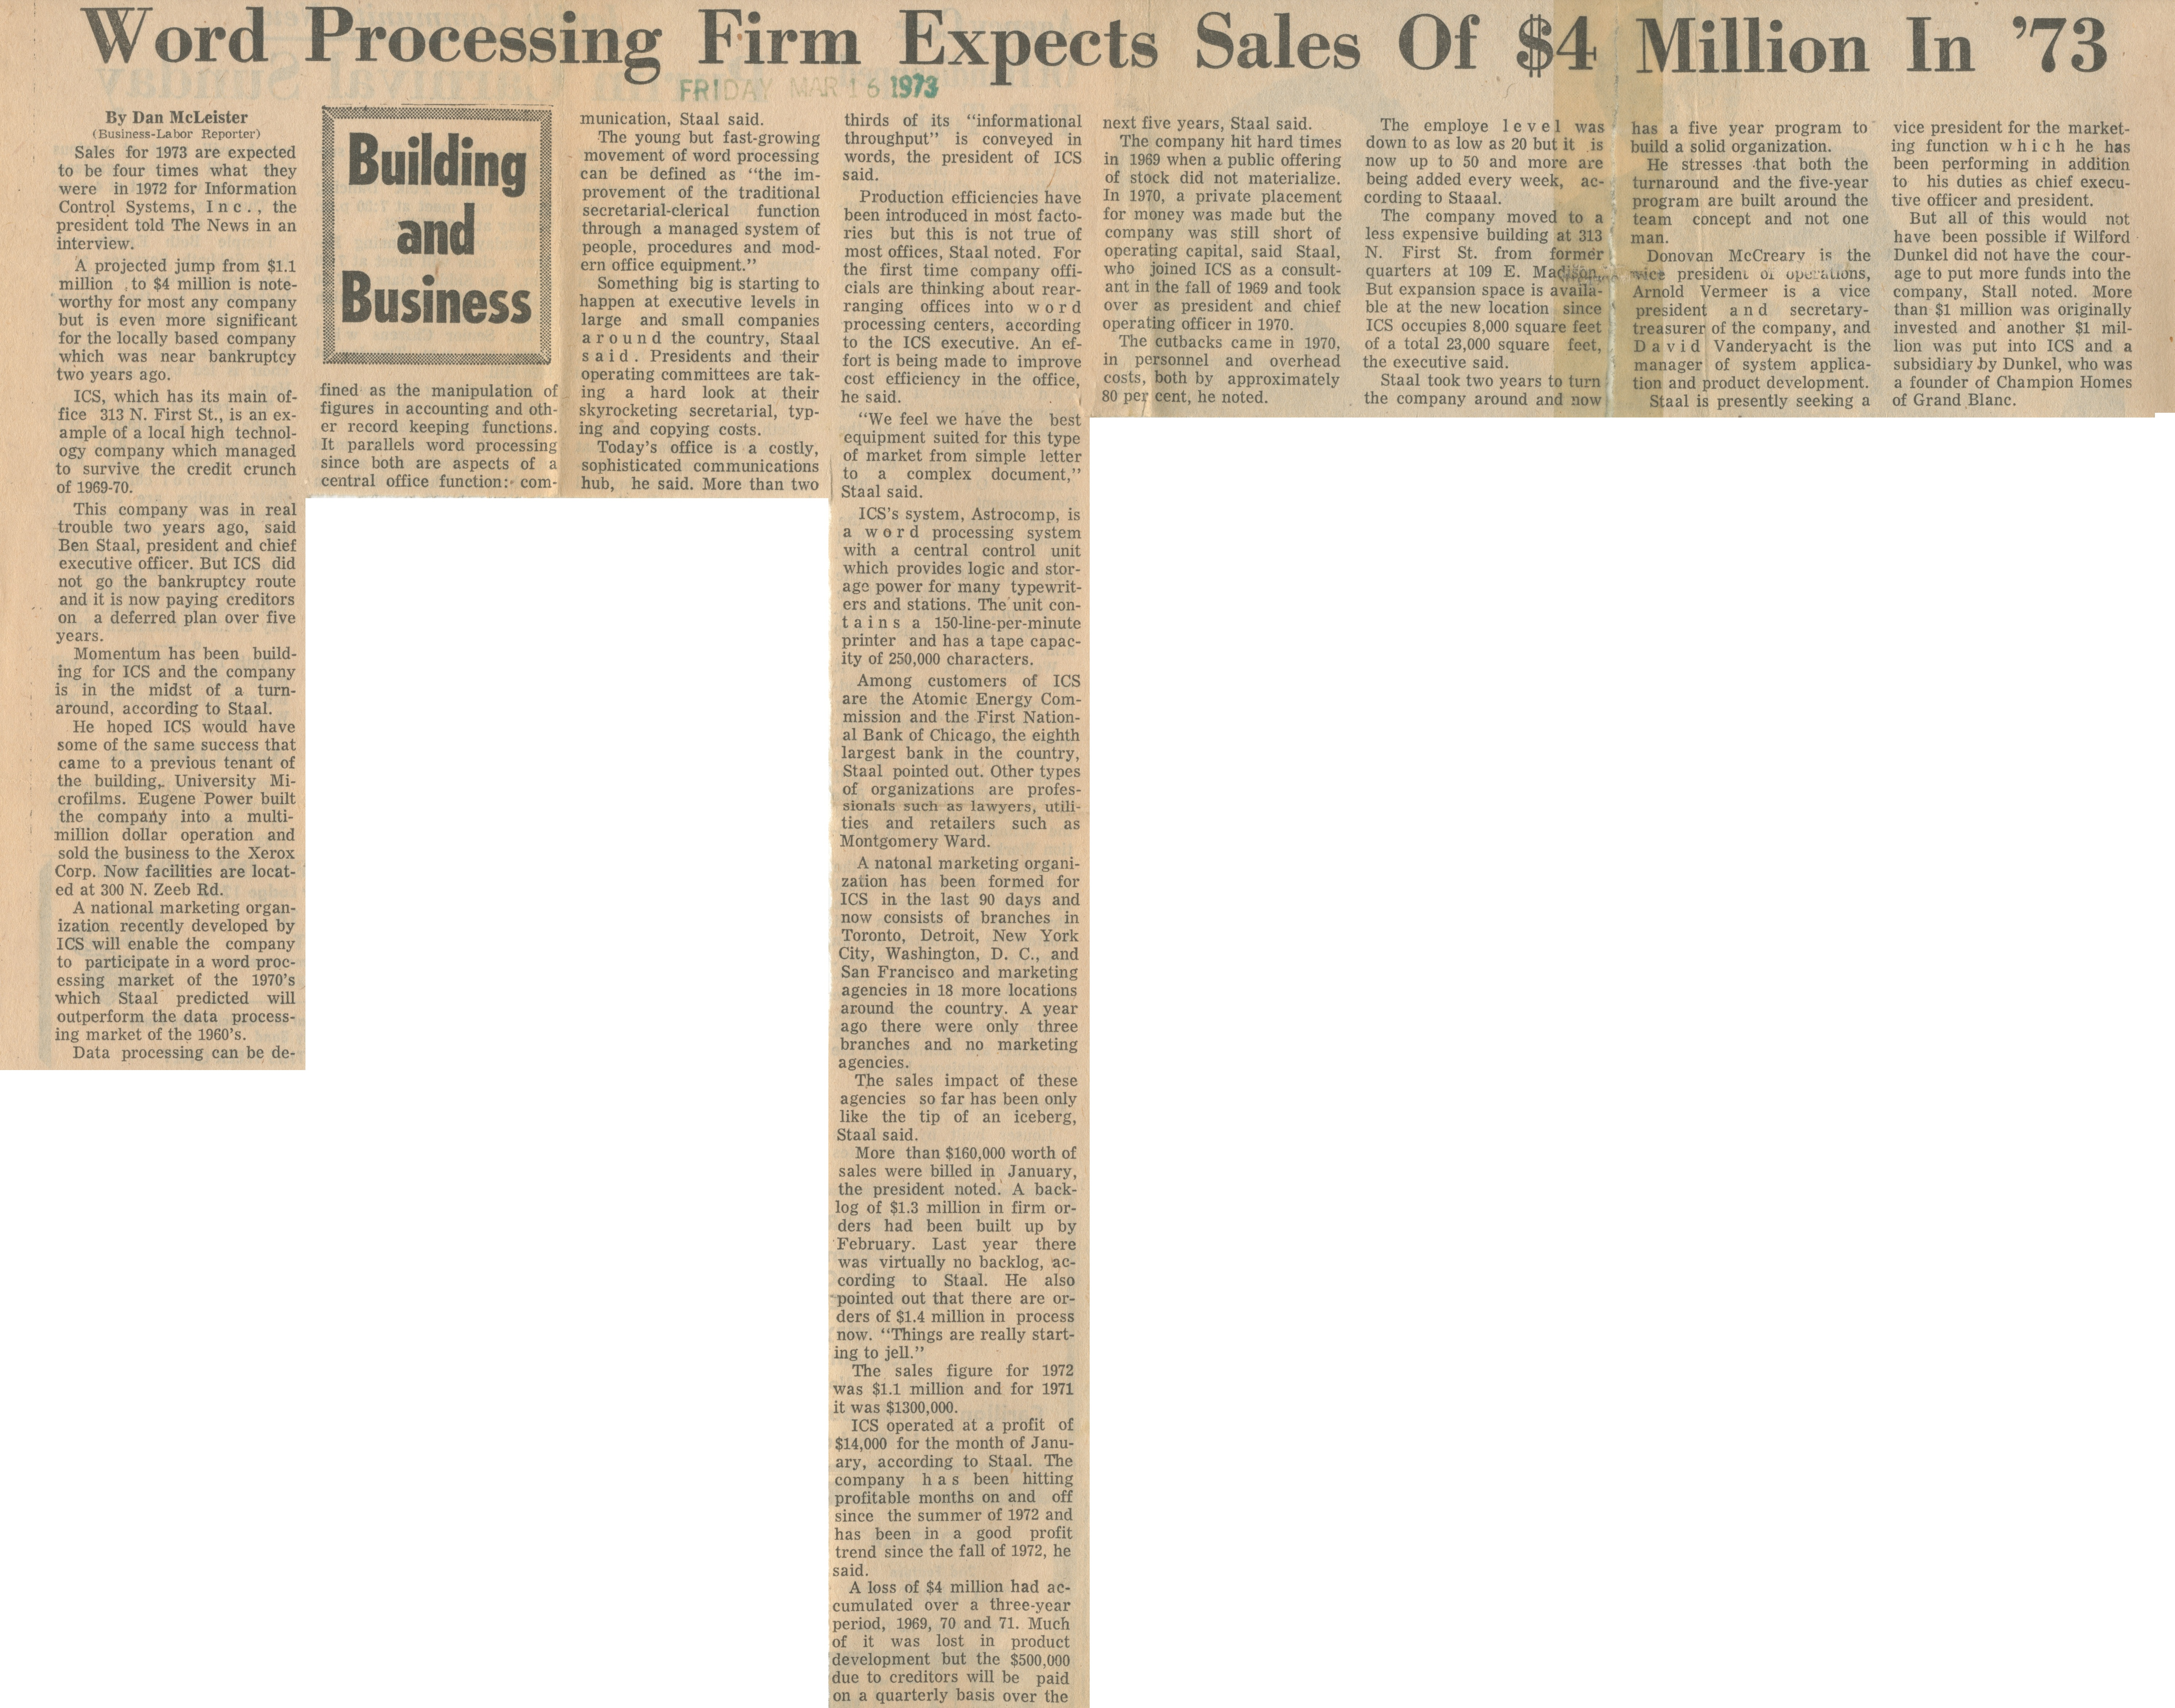 Word Processing Firm Expects Sales of $4 Million in '73 image